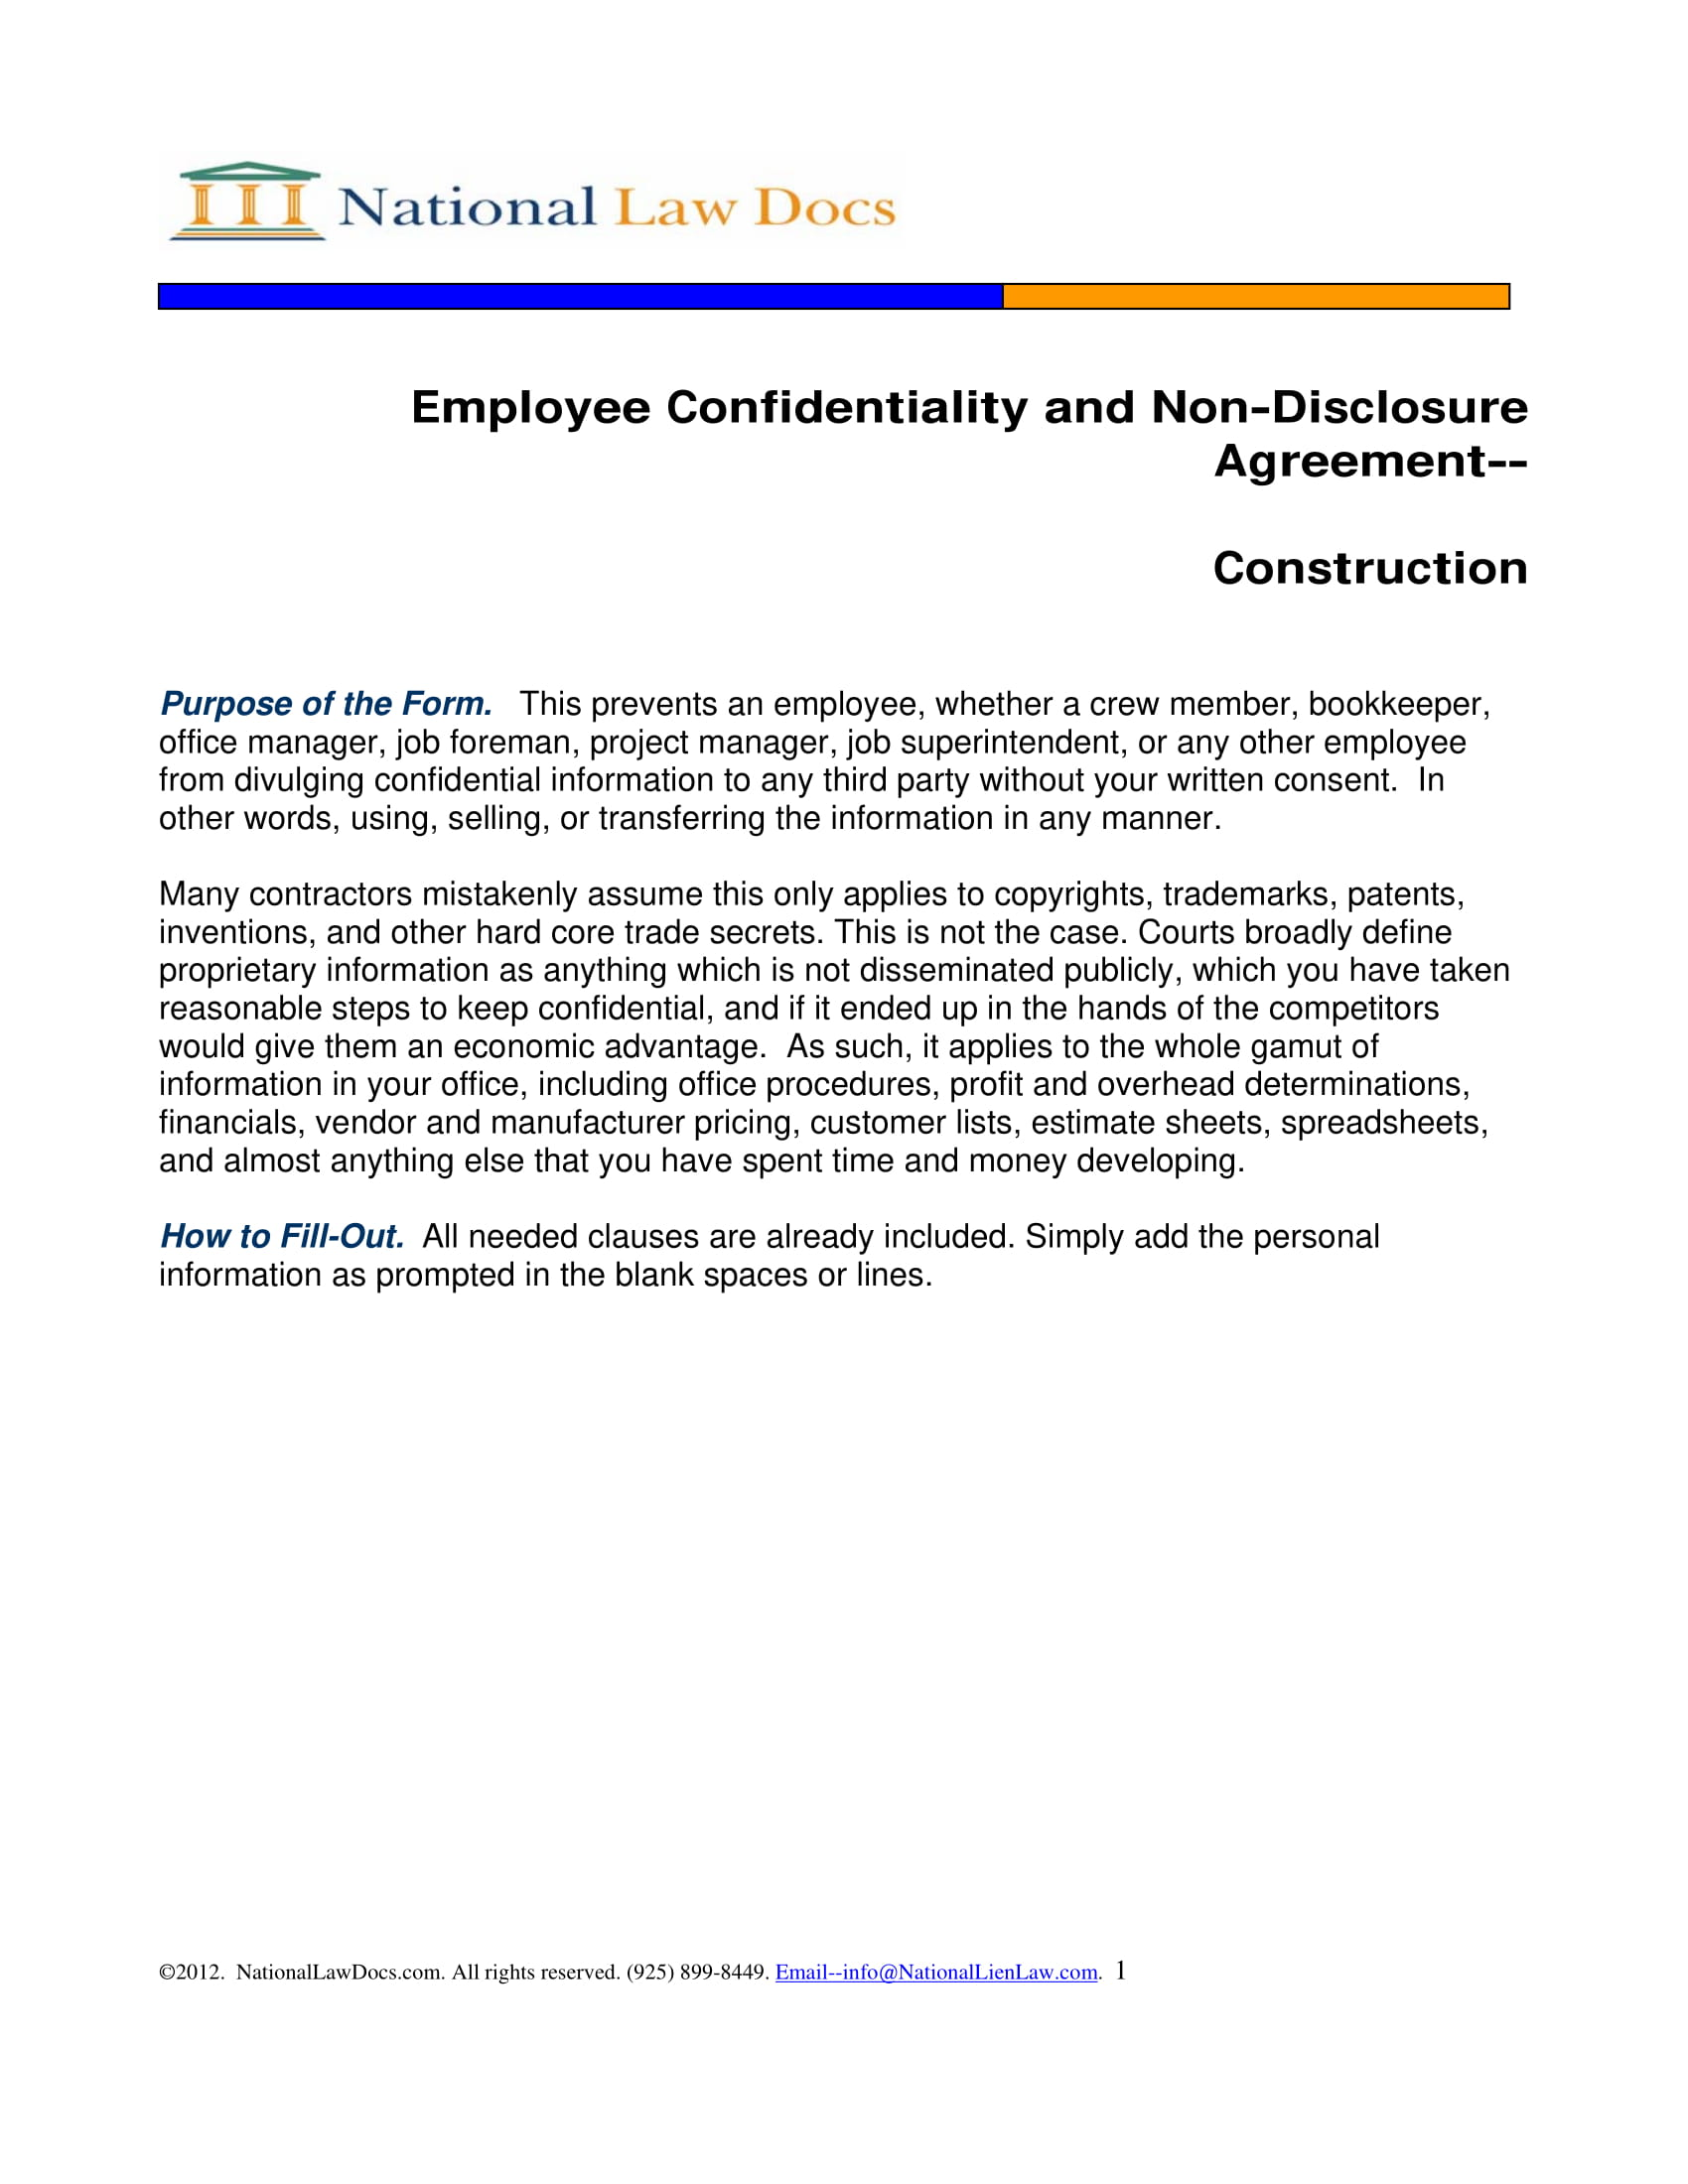 10 Employee Confidentiality Agreement Examples Pdf Word